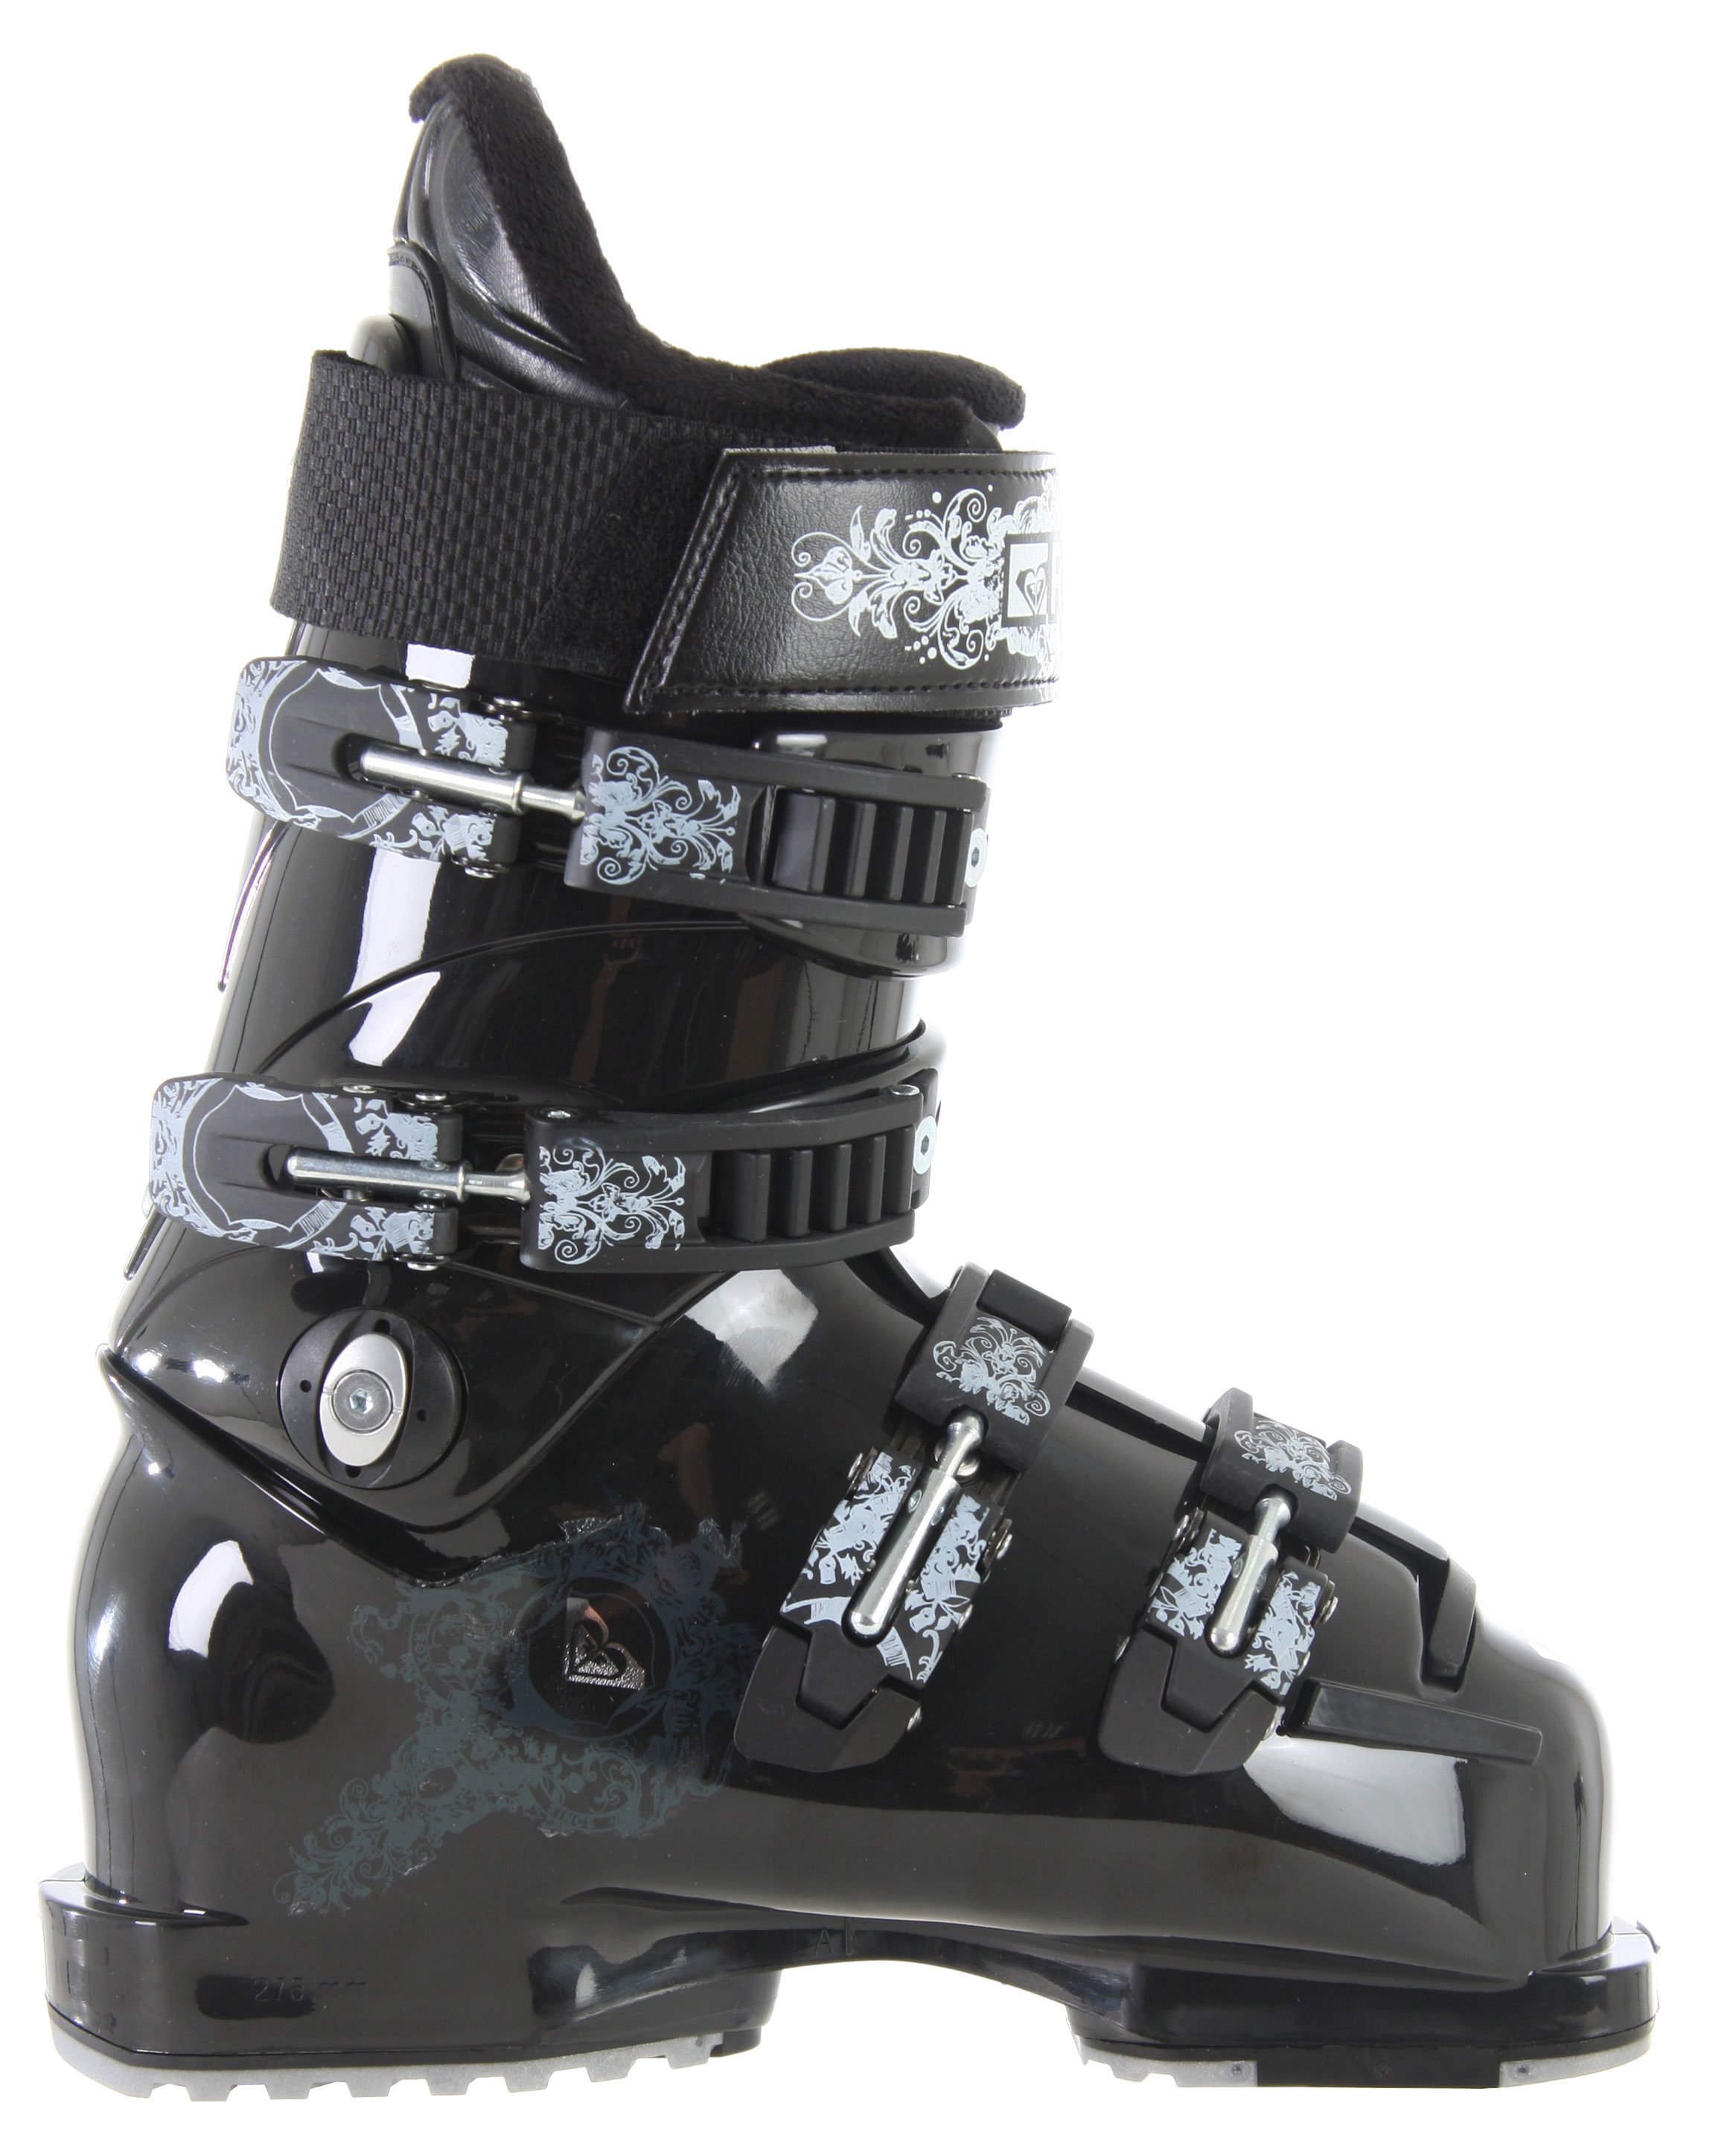 Ski Finally, a women's boot for the true expert. Stiff flex for impossible speed, perfect forward pressure and a precise fit for ultimate control. Go anywhere, try anything - the Roxy Pro ski boots were made for ripping.Key Features of the Roxy Pro Ski Boots: Flex: 110 Sizes: 3-9.5 World Cup replica shell Custom Pro Concept liner Removable rear support - $328.95